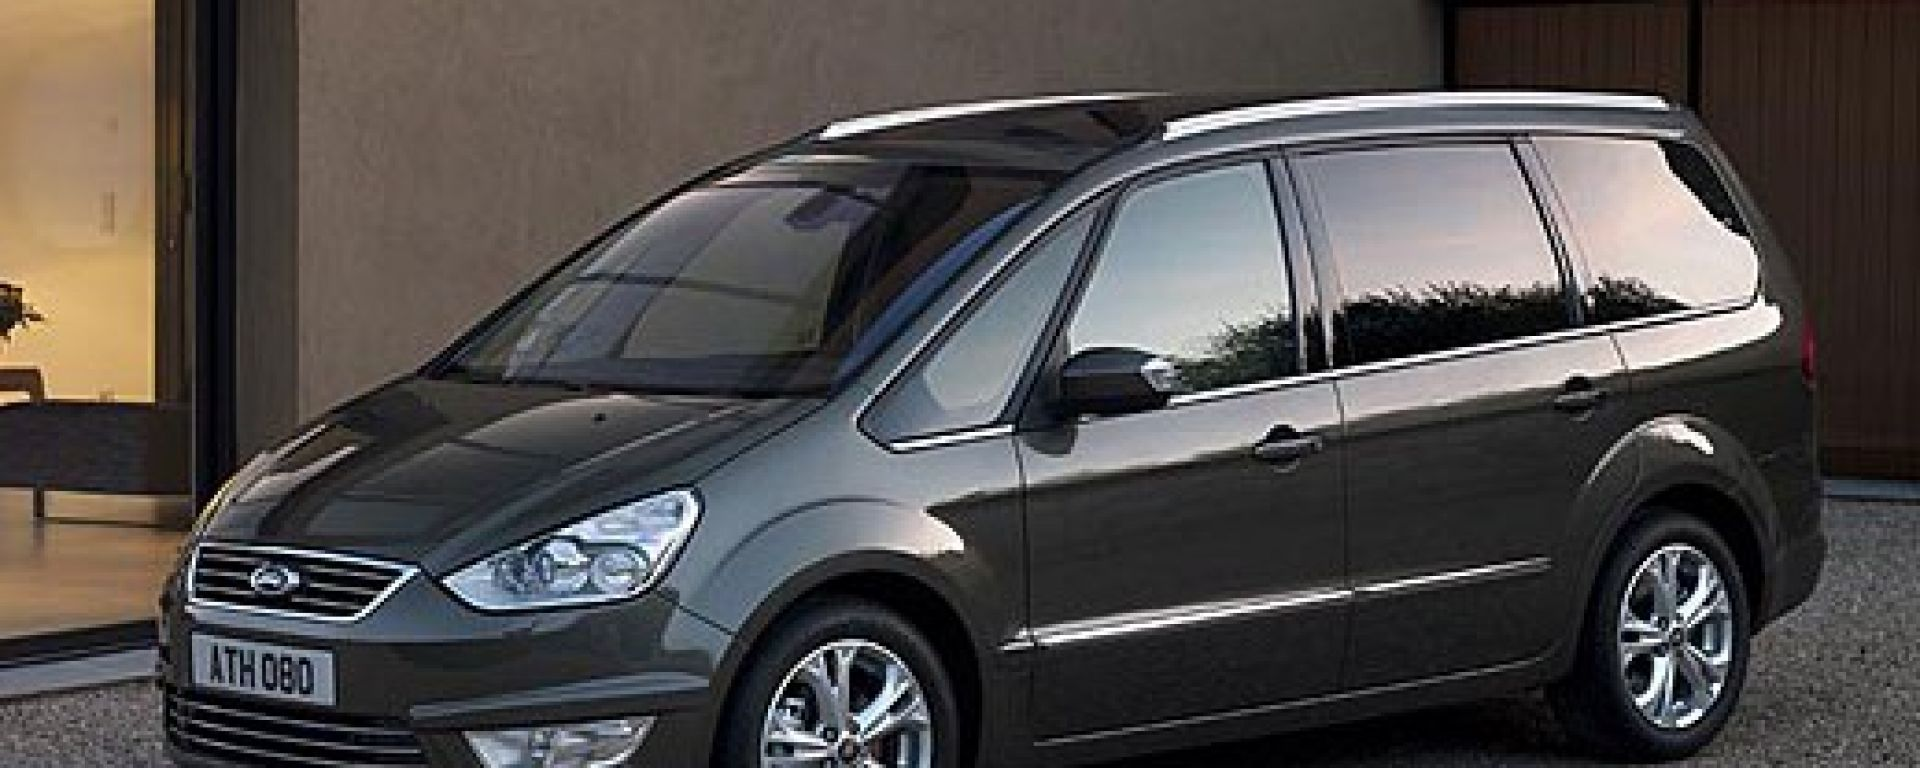 anteprima ford galaxy e s max 2010 motorbox. Black Bedroom Furniture Sets. Home Design Ideas